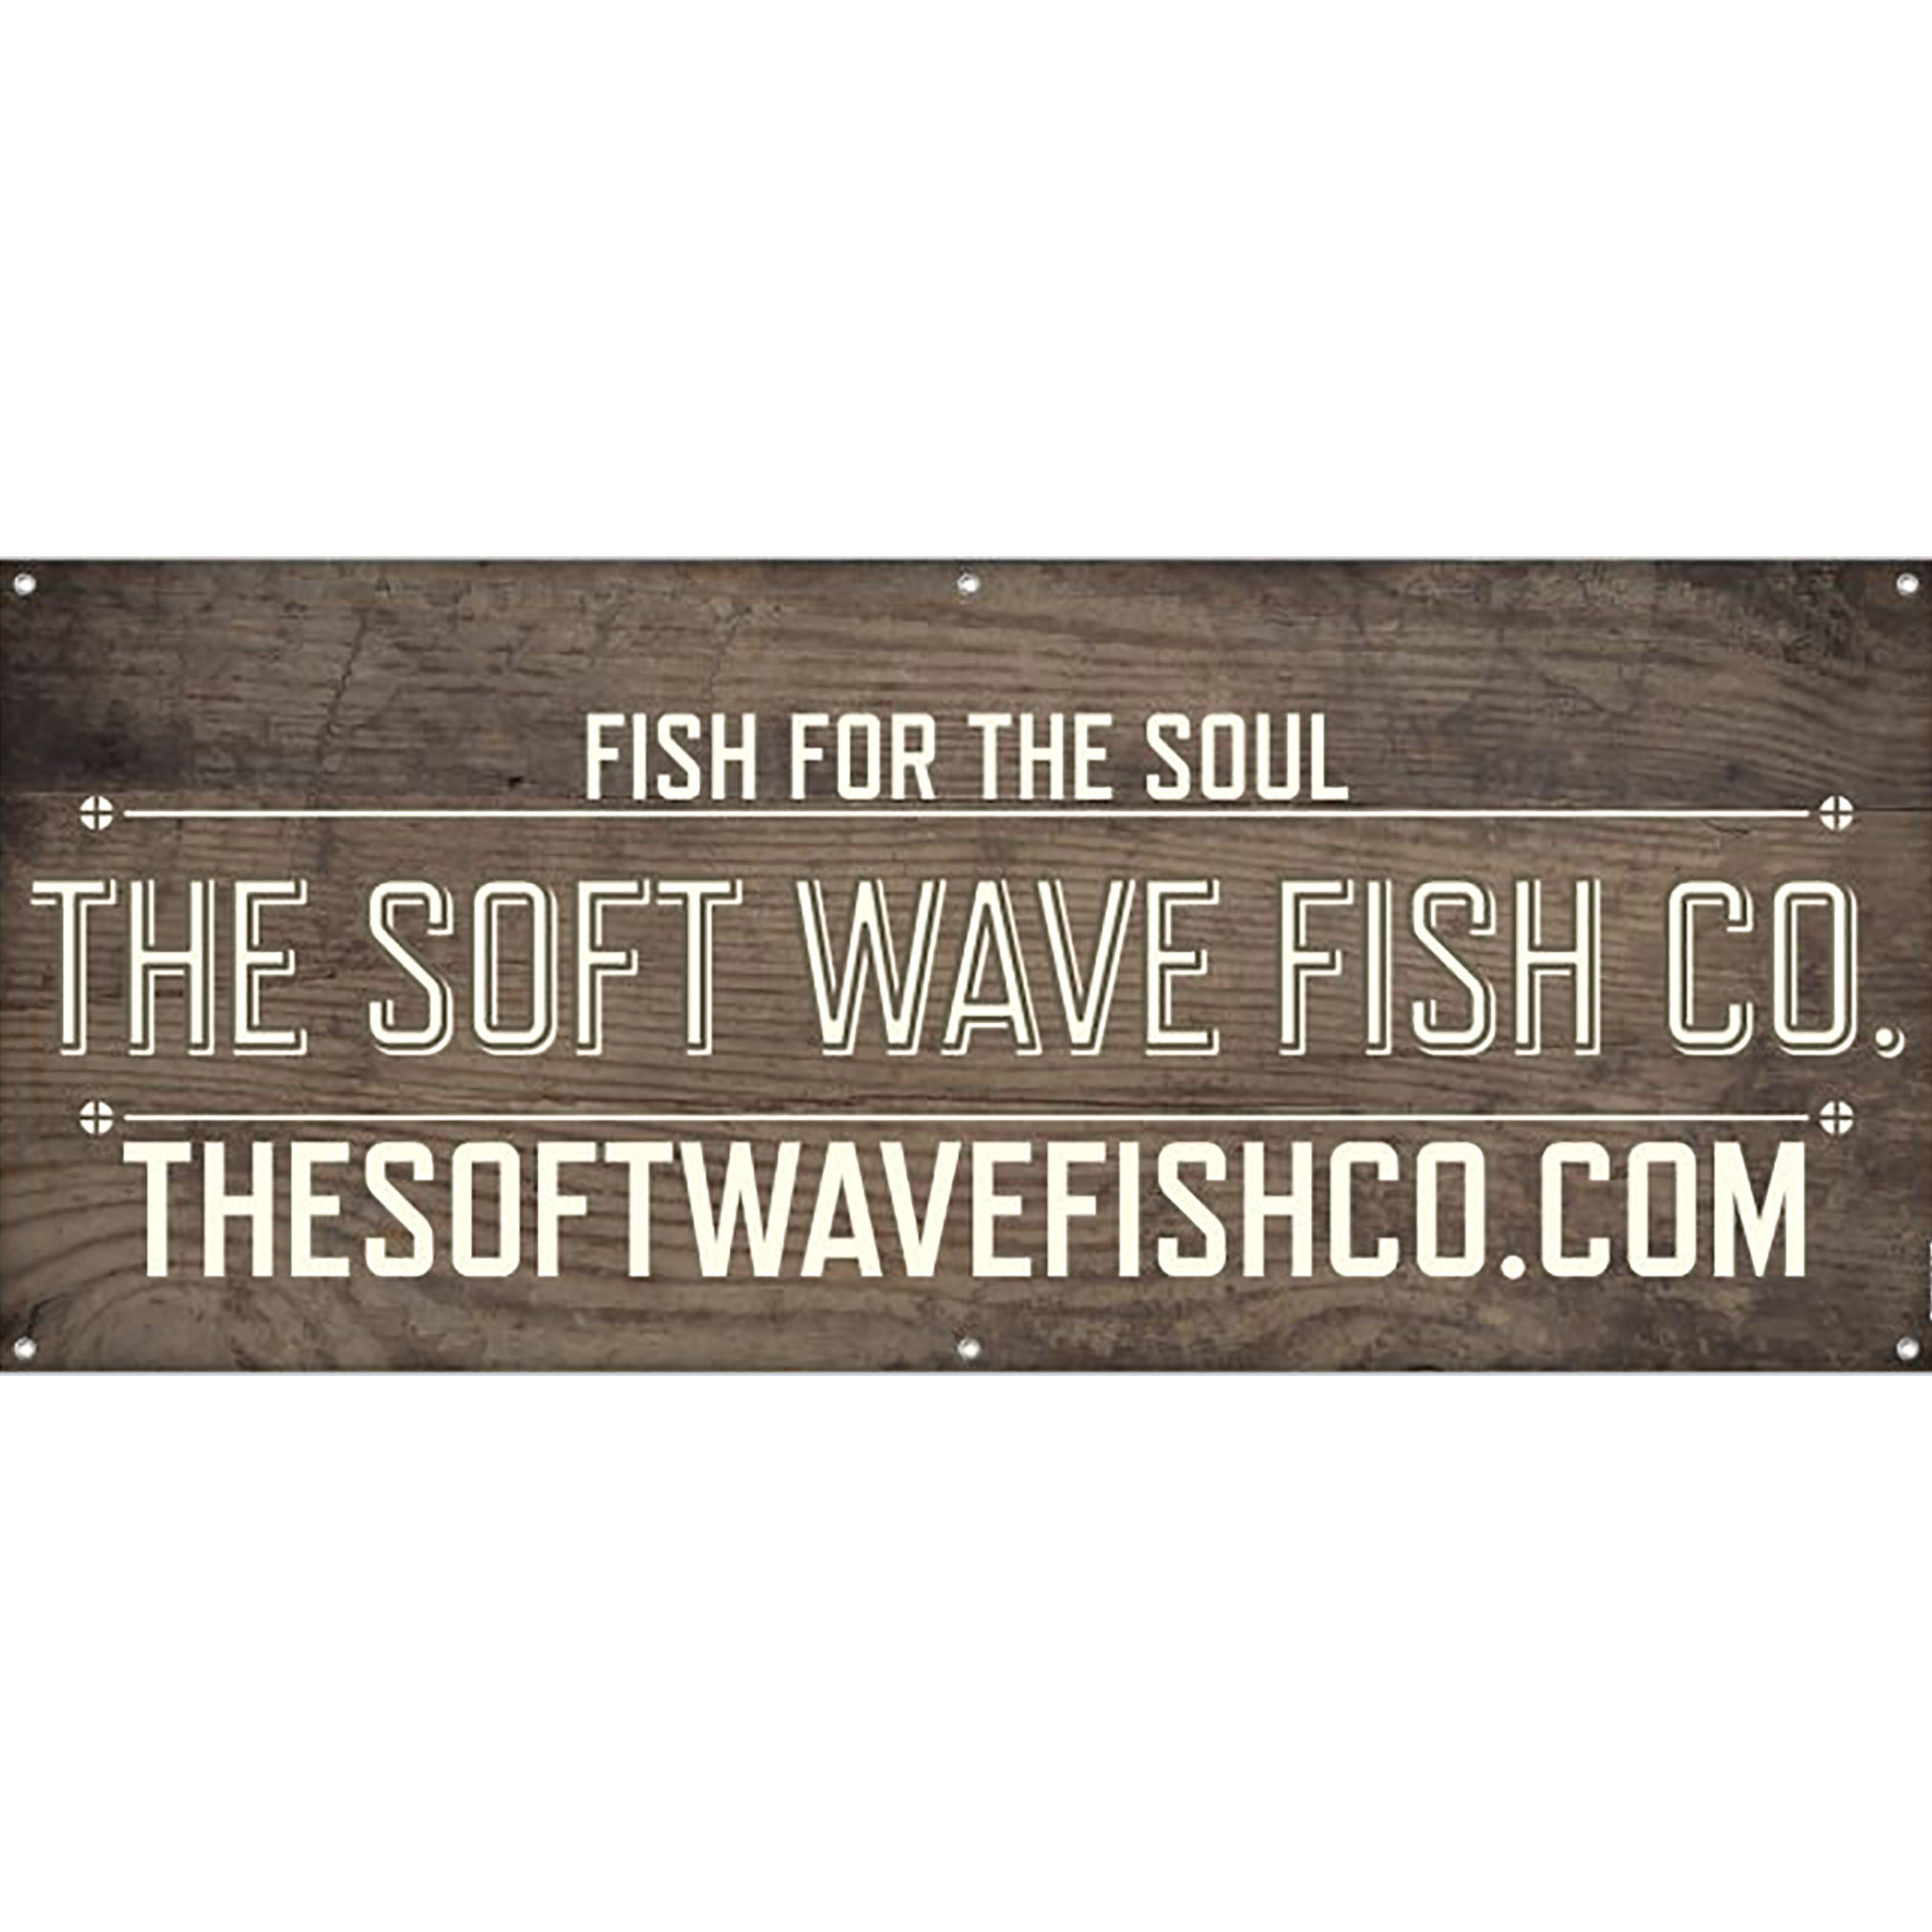 The Soft Wave Fish Co.